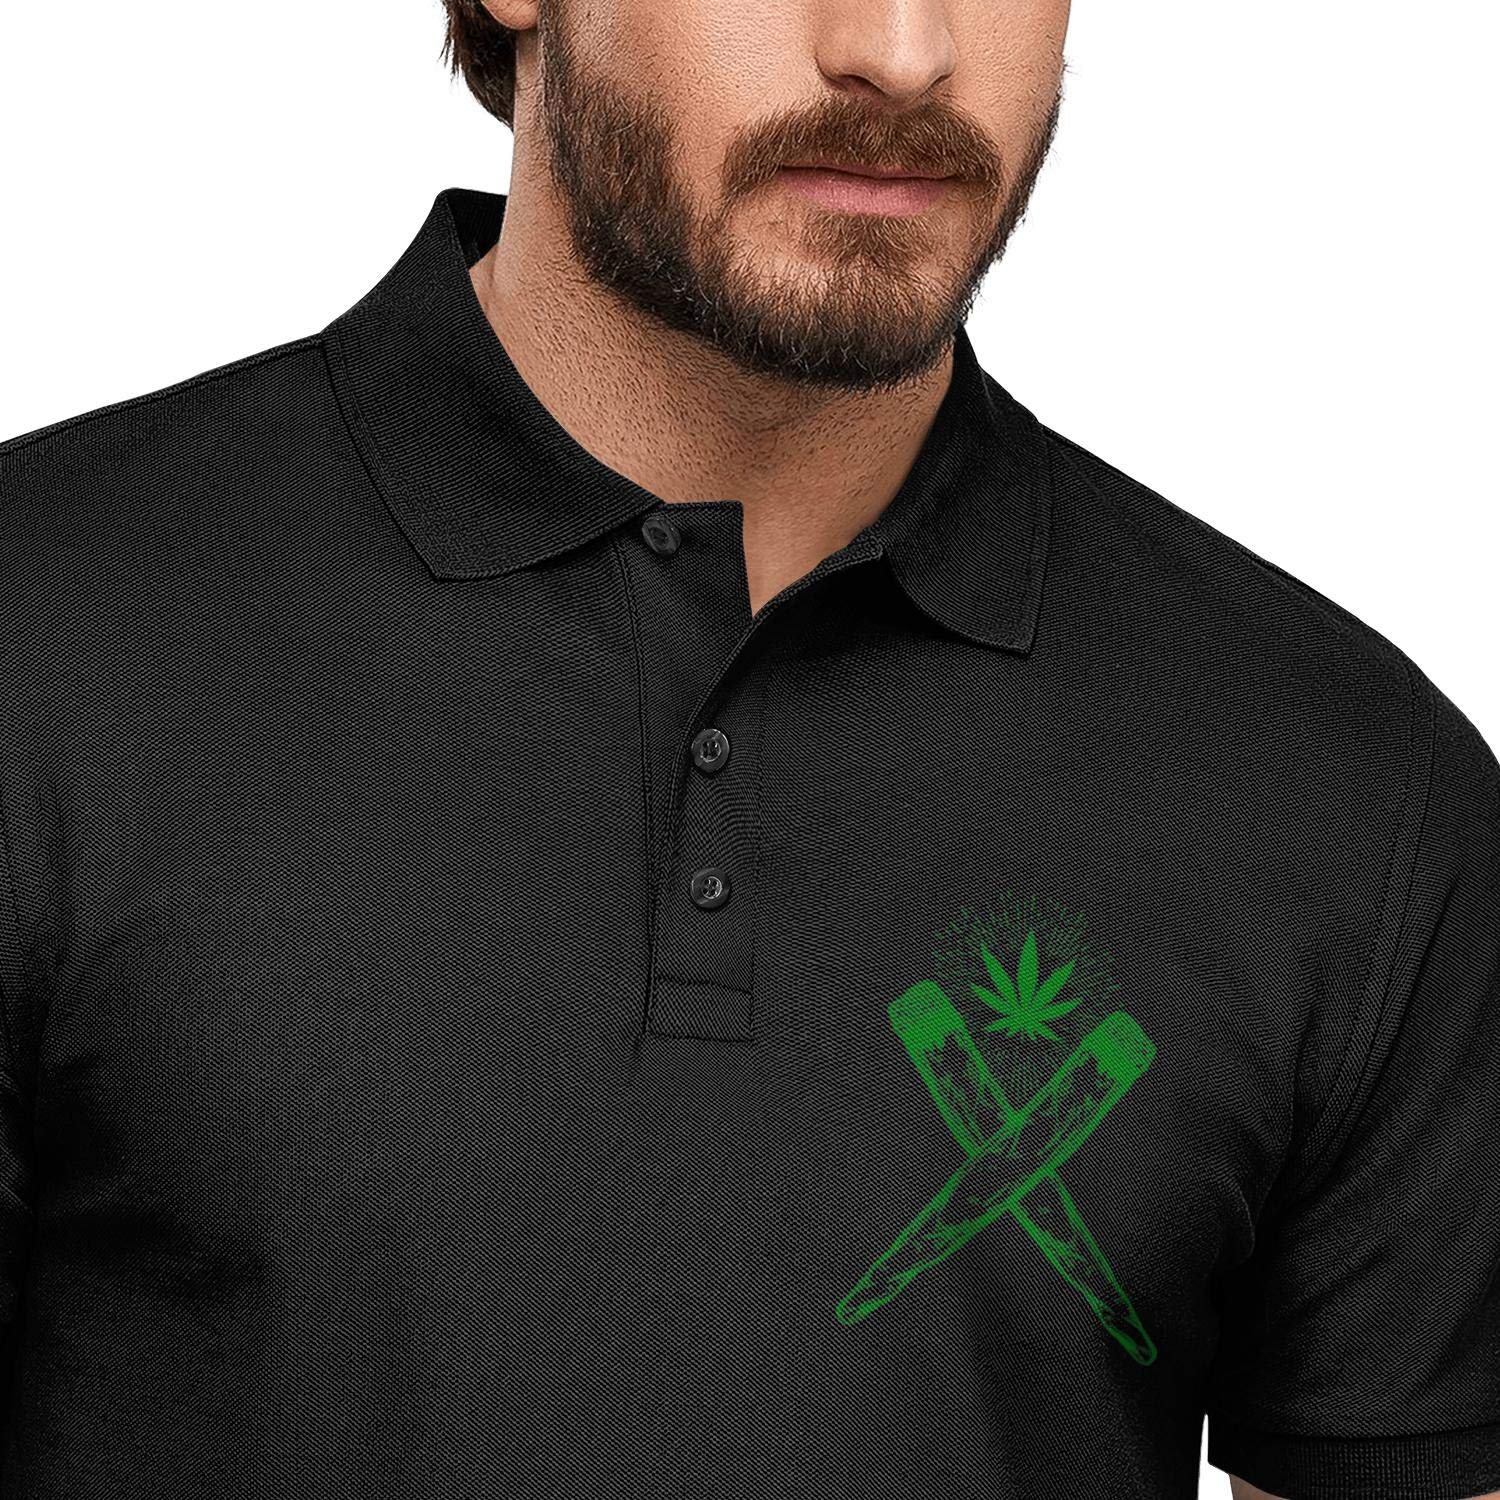 WYFEN Mens Printed Polo Shirt Green Weed cannbis Casual Short Sleeve Tee